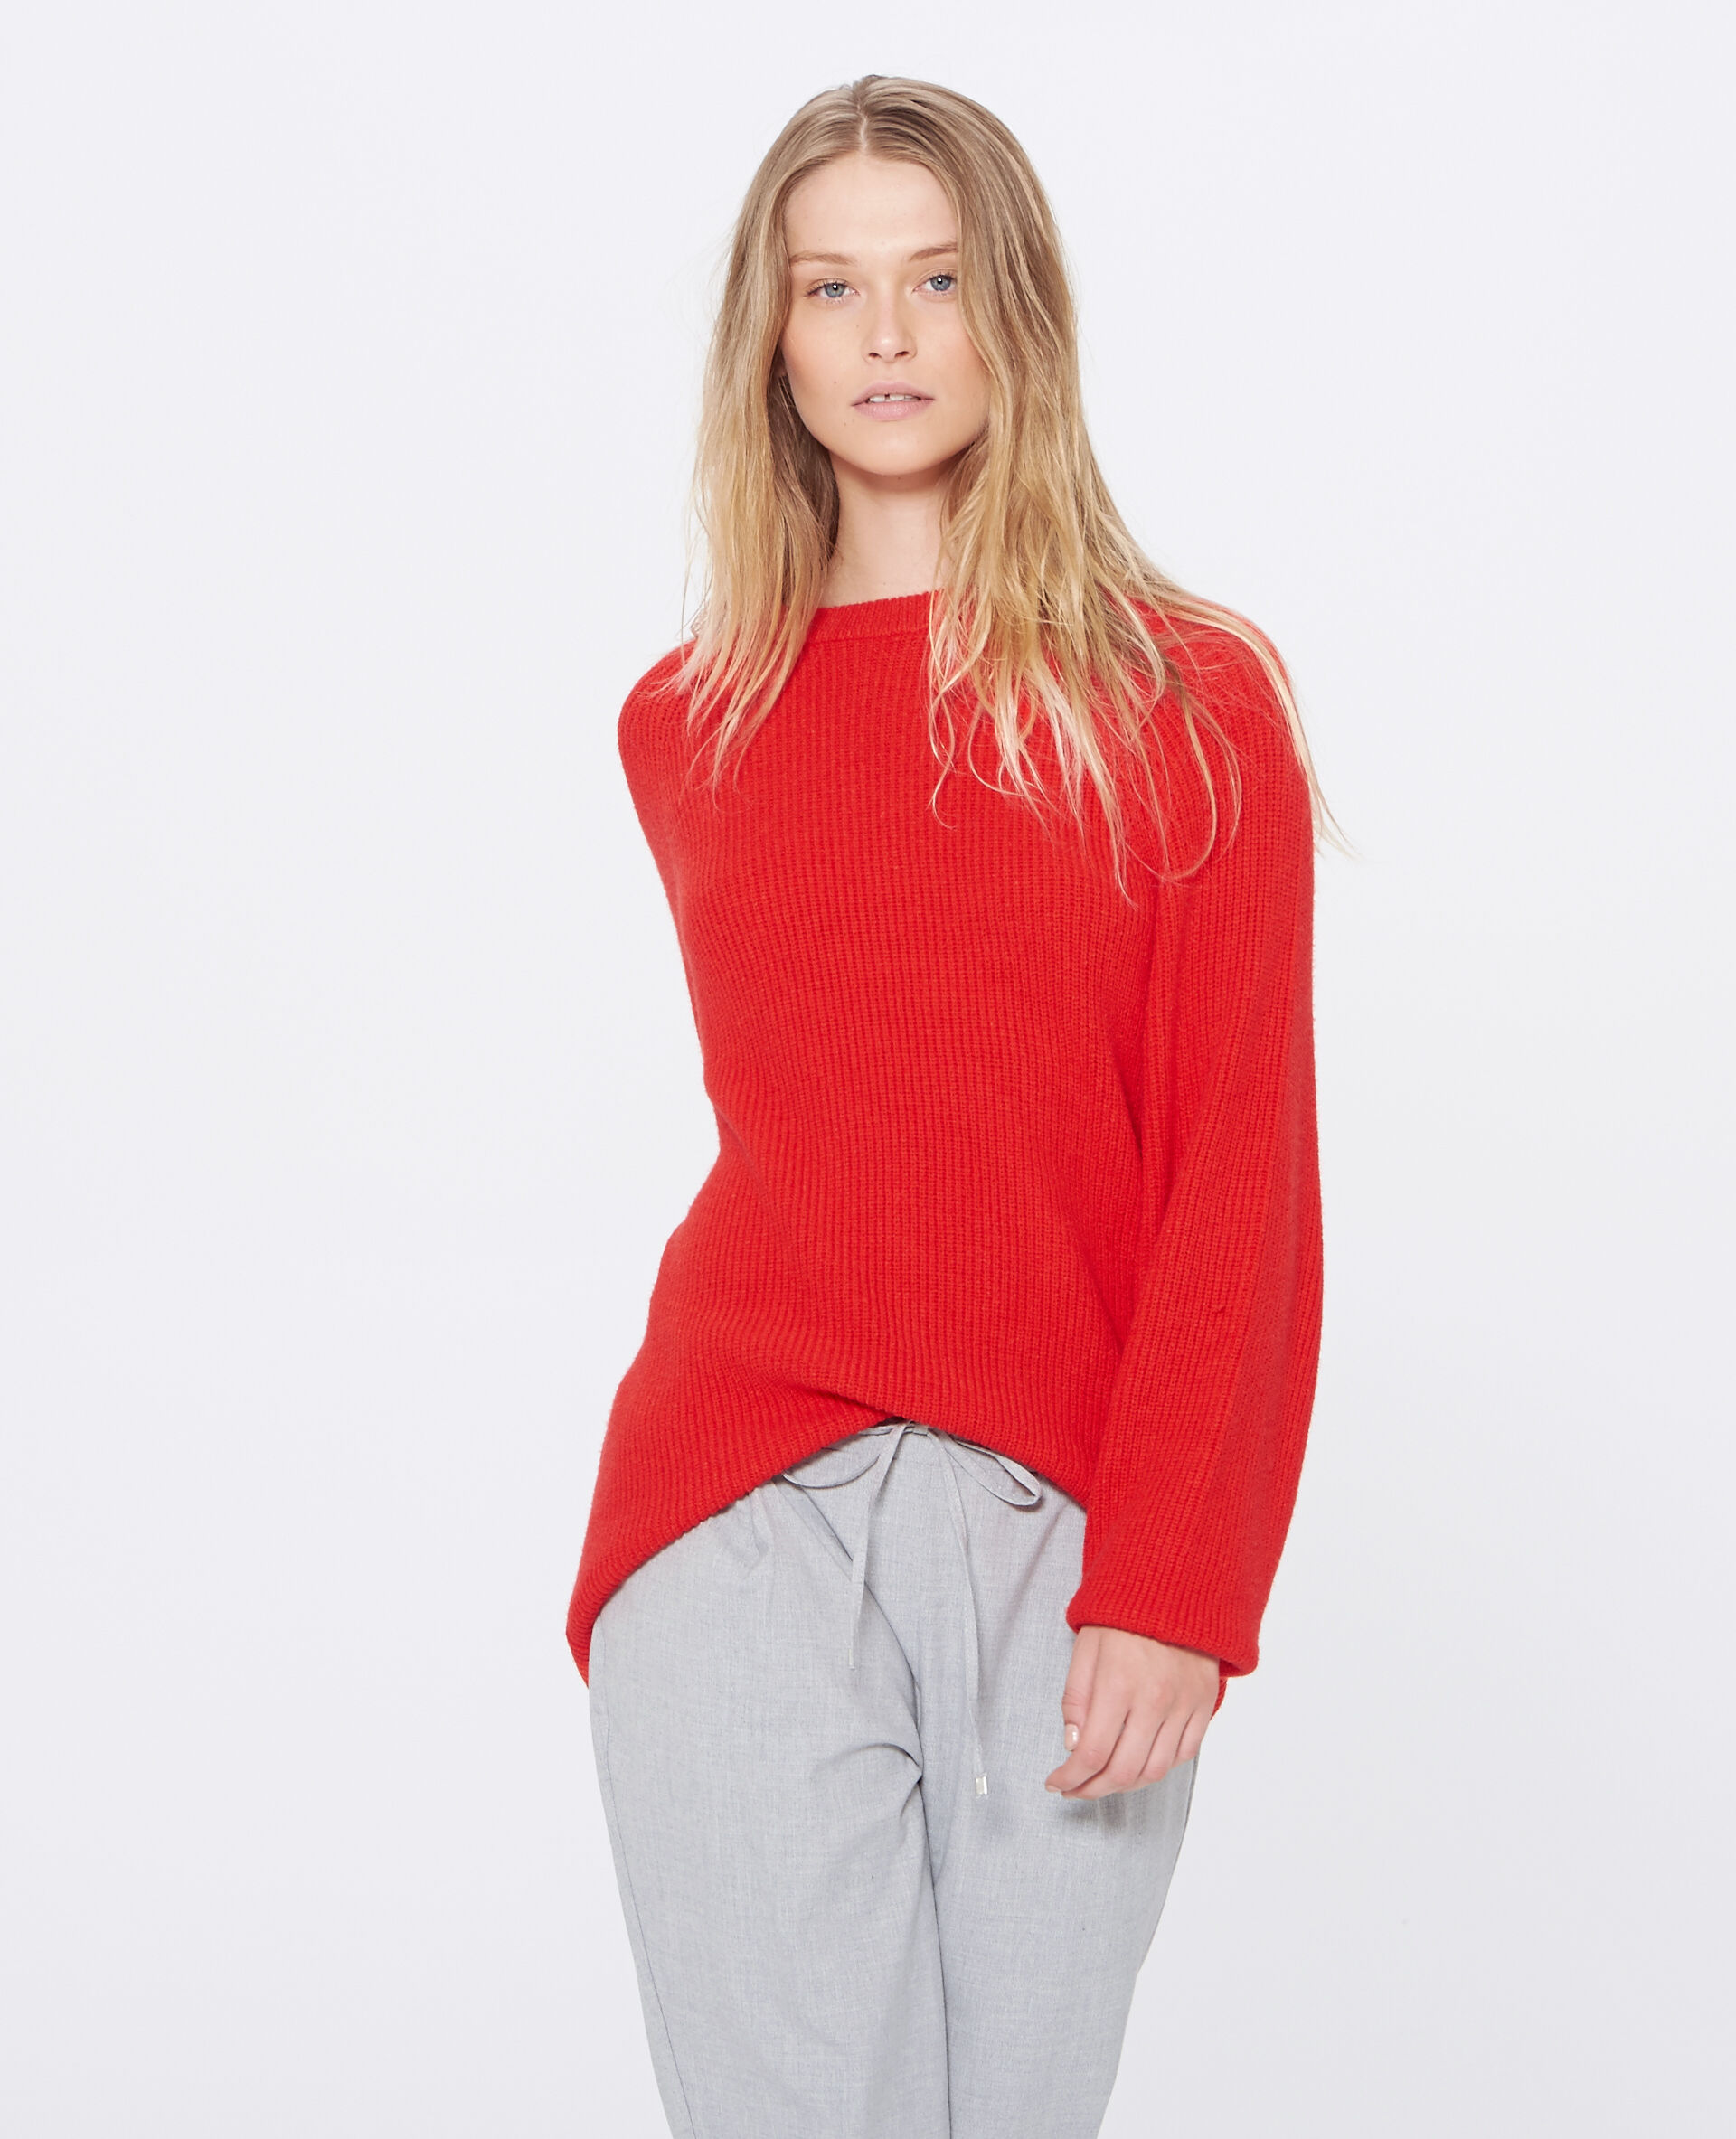 ✅Pull long Femme - Couleur rouge - Taille M - PIMKIE - MODE FEMME